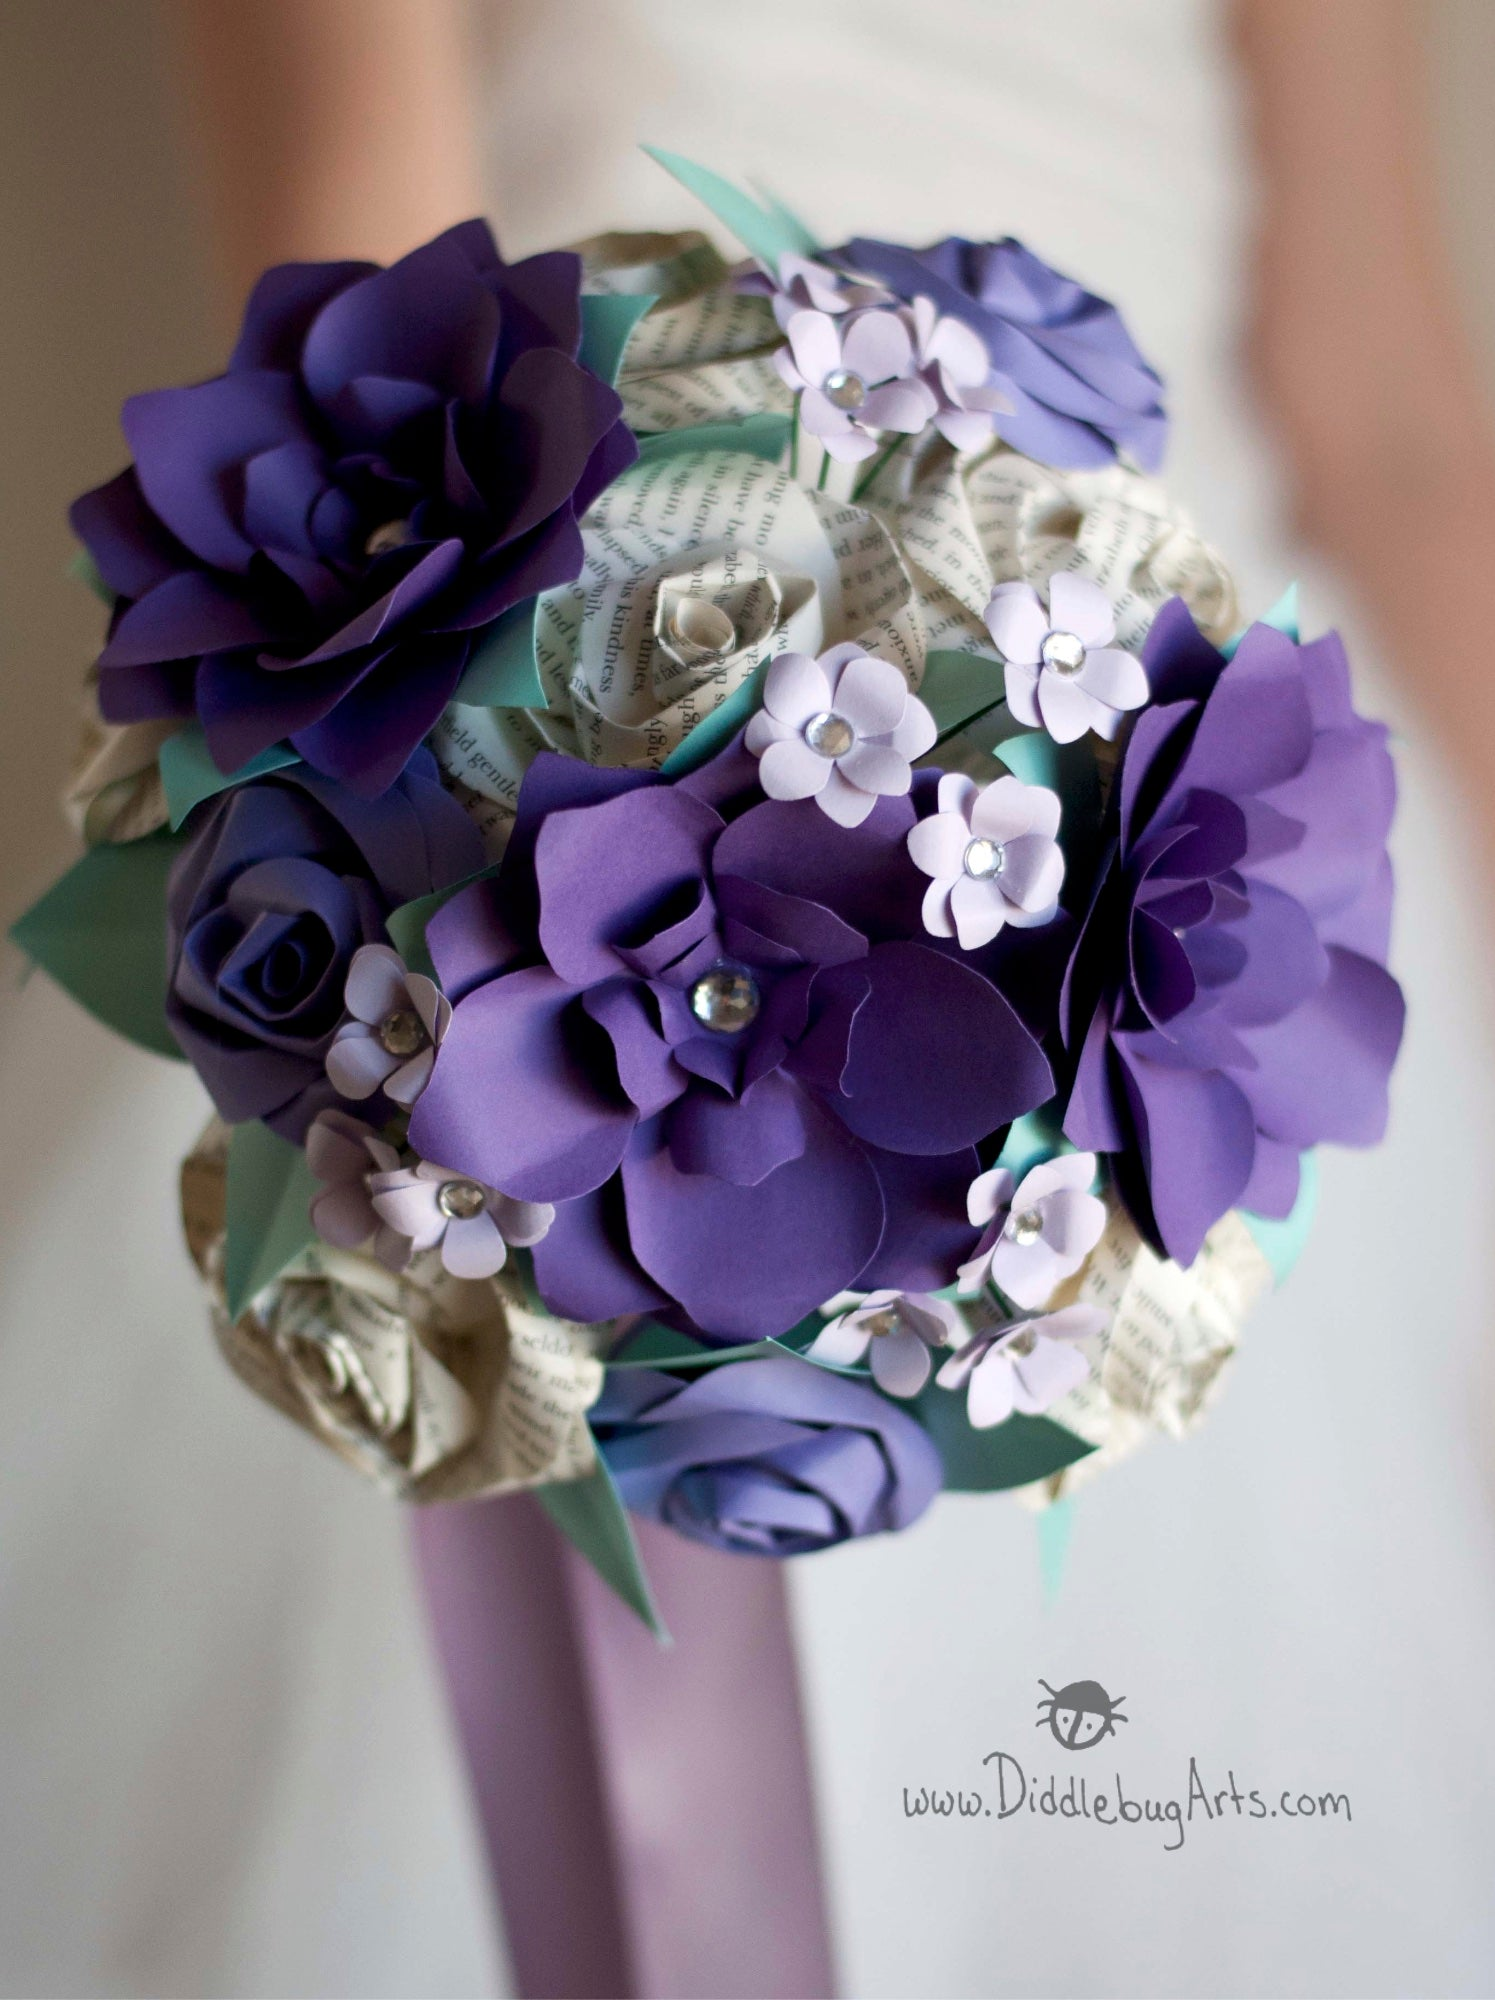 READY TO SHIP - Pride and Prejudice Book Page Rose and Purple Gardenias Bouquet